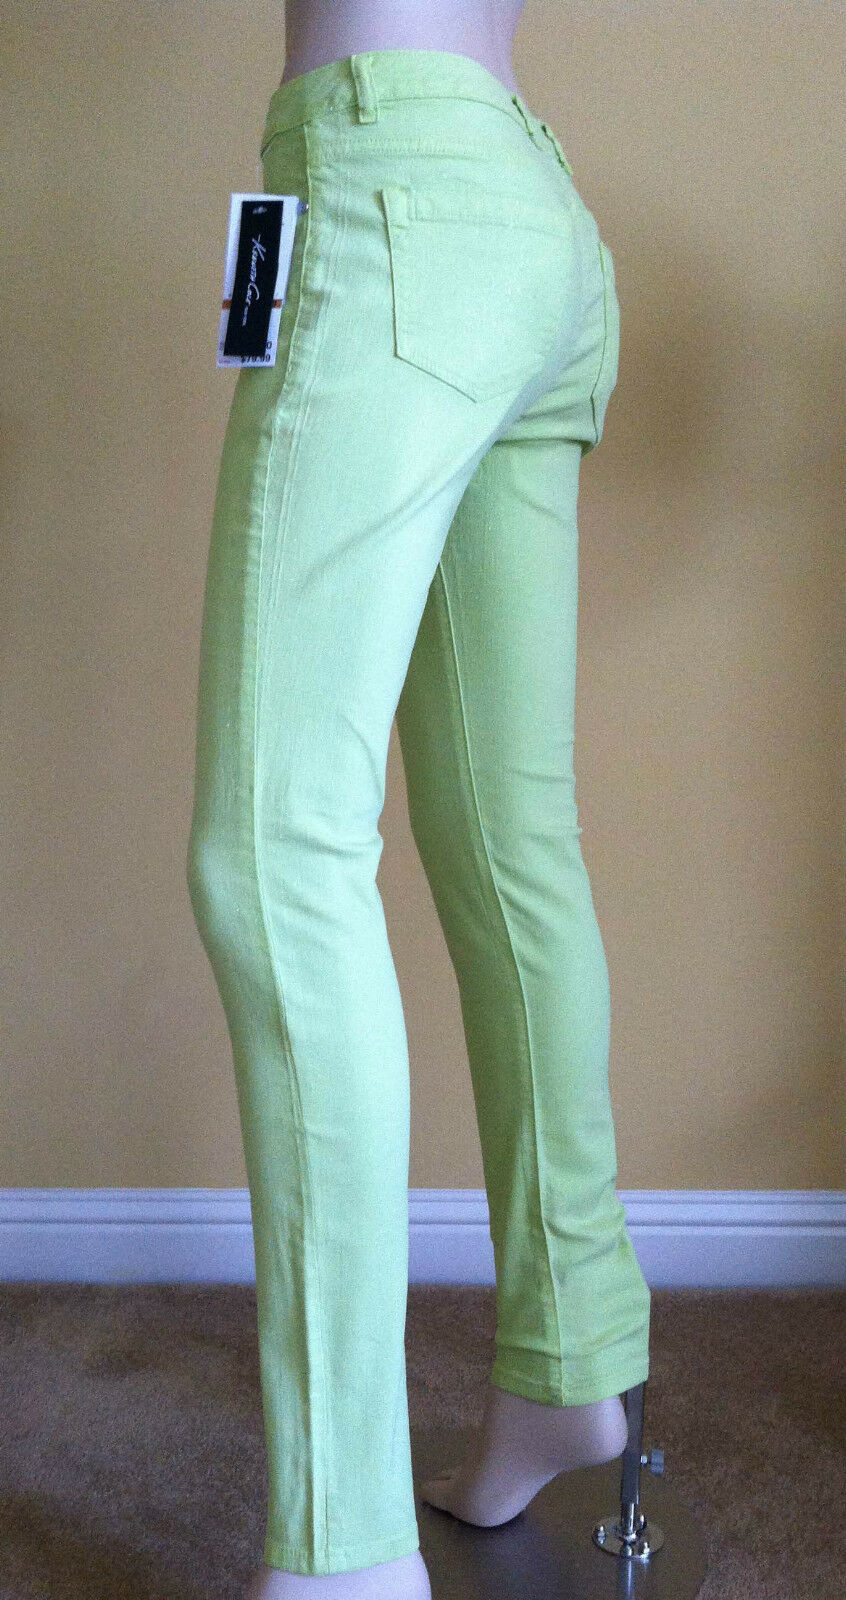 KENNETH COLE The Gia Jeans Candy Green Shimmer Skinny Slim Sz 29